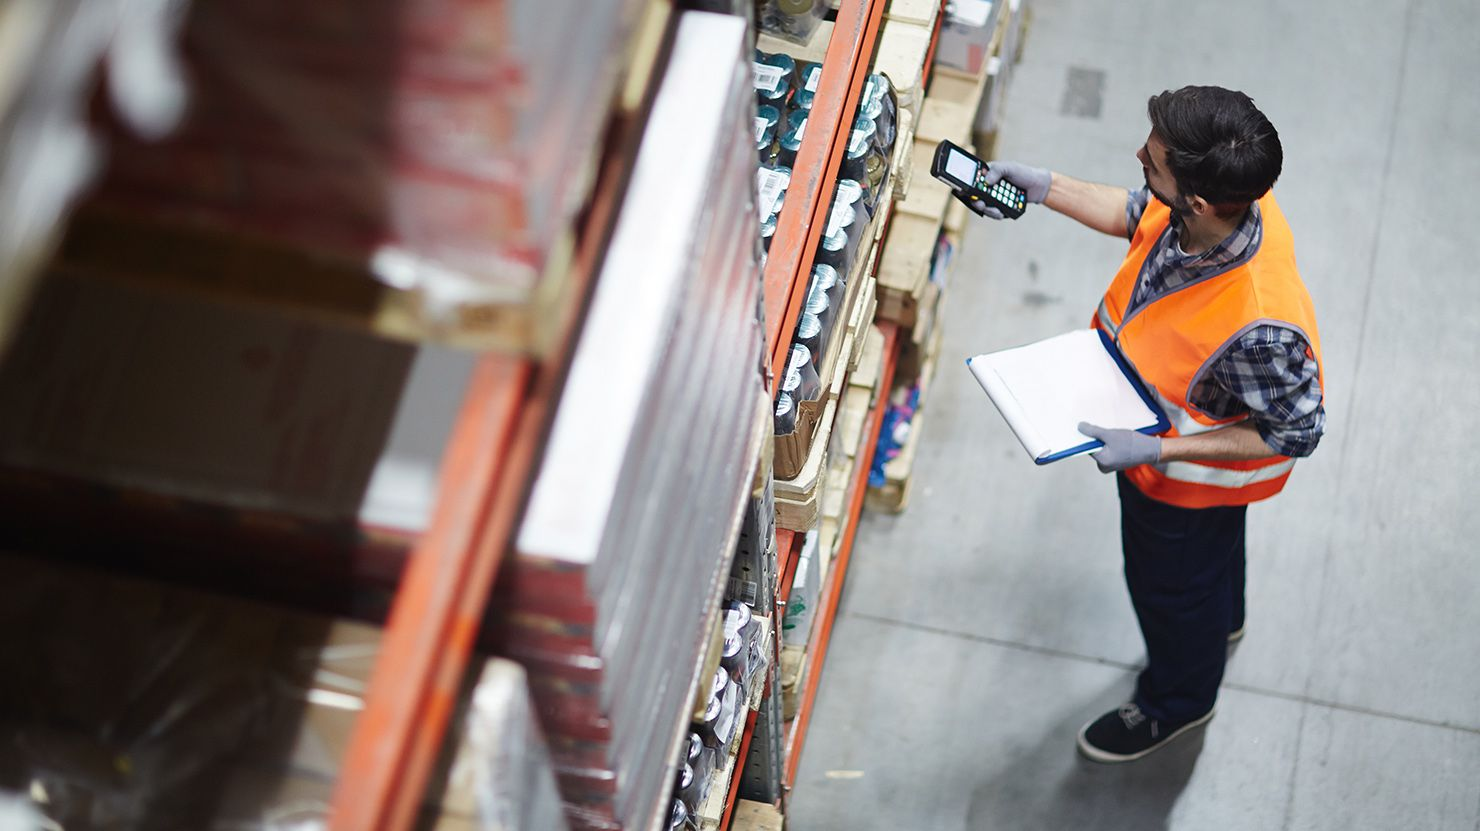 view from above of man doing inventory in warehouse